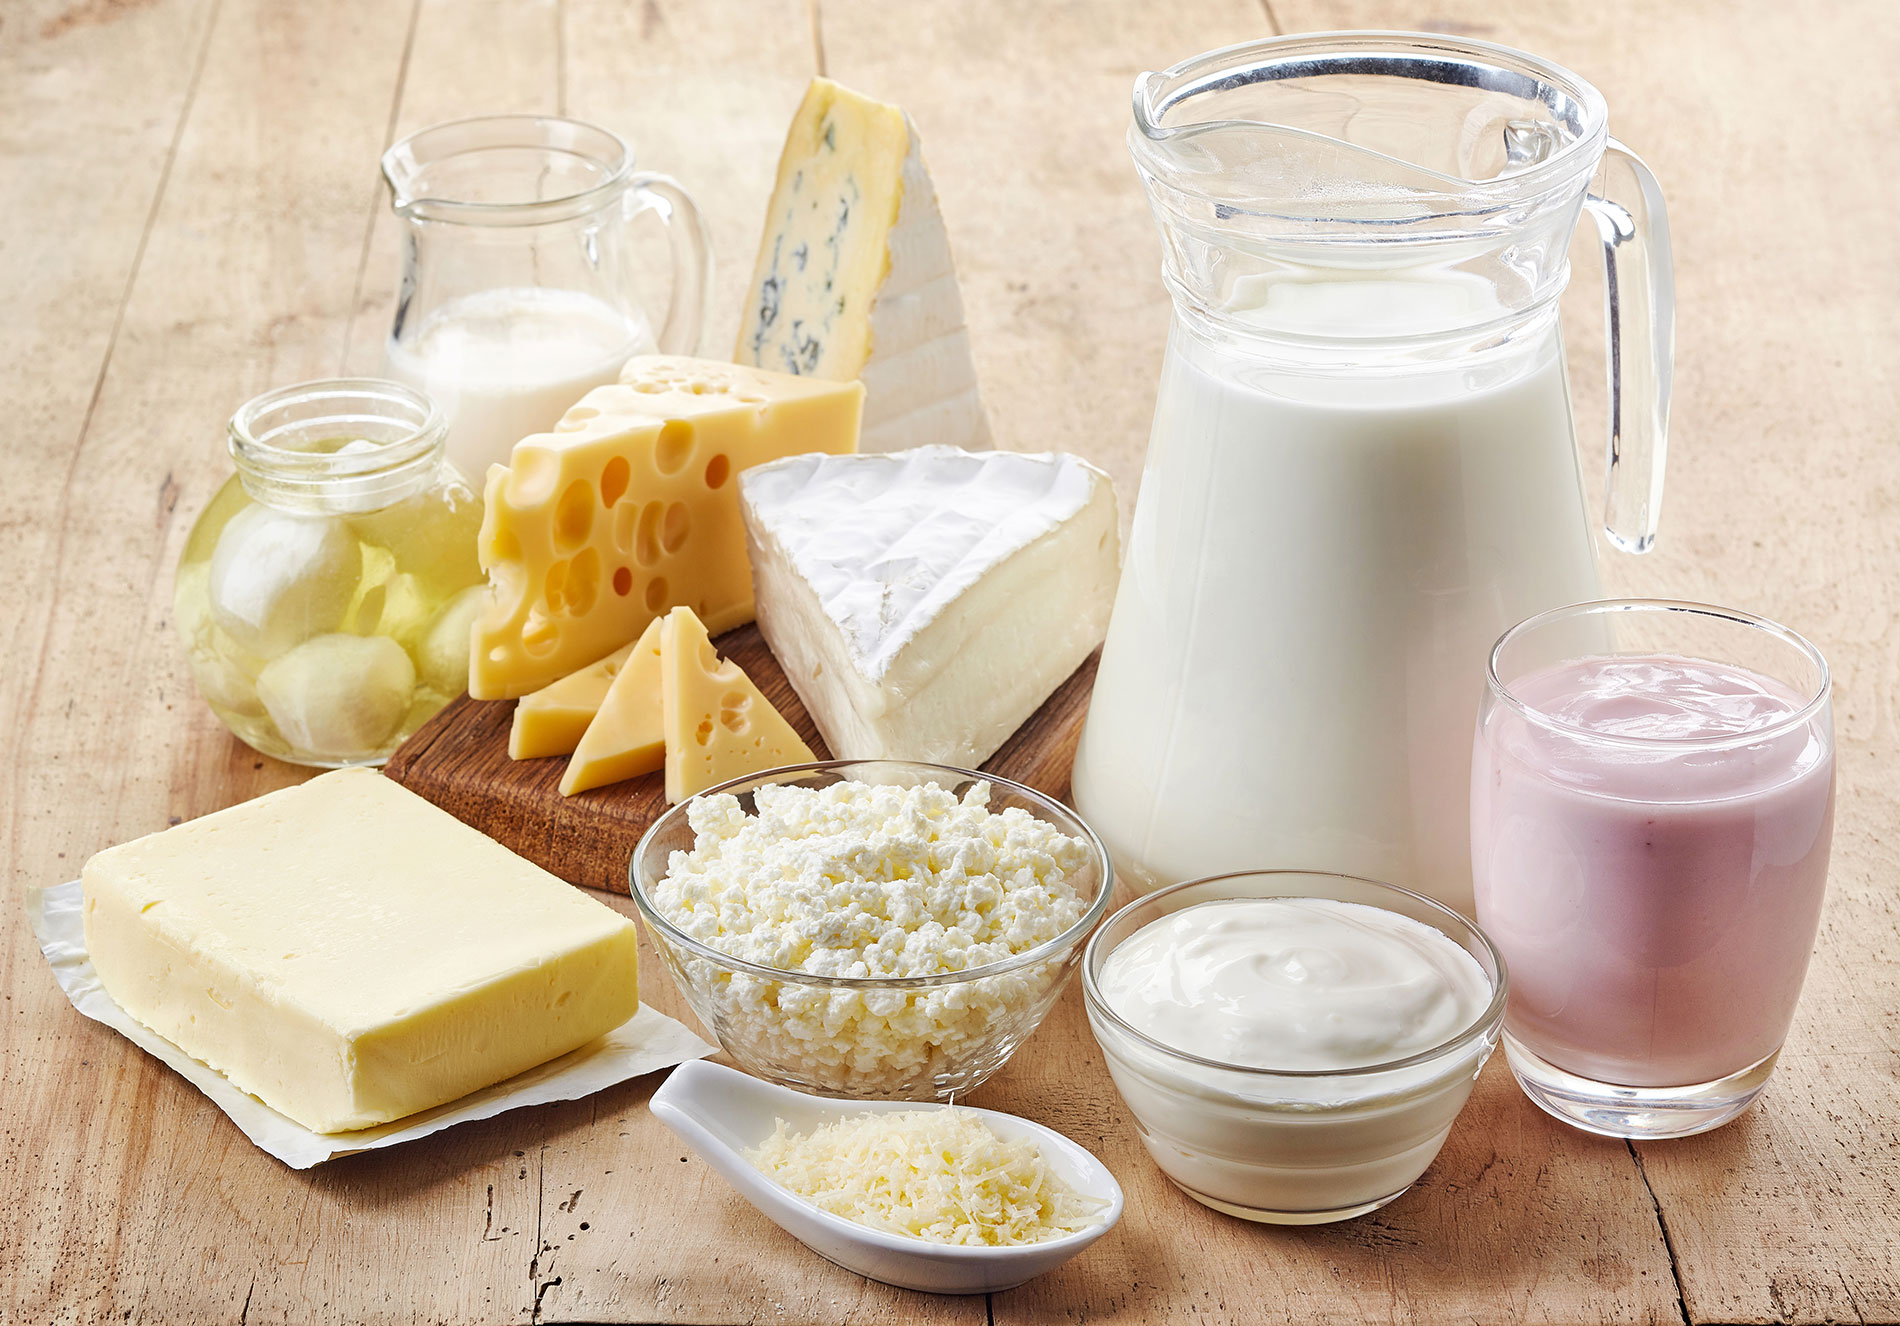 Global Transglutaminase for Dairy Market 2020 Competitive Analysis –  Ajinomoto, Pangbo Biological, BDF Natural Ingredients, C & P Group GmbH –  The Daily Chronicle